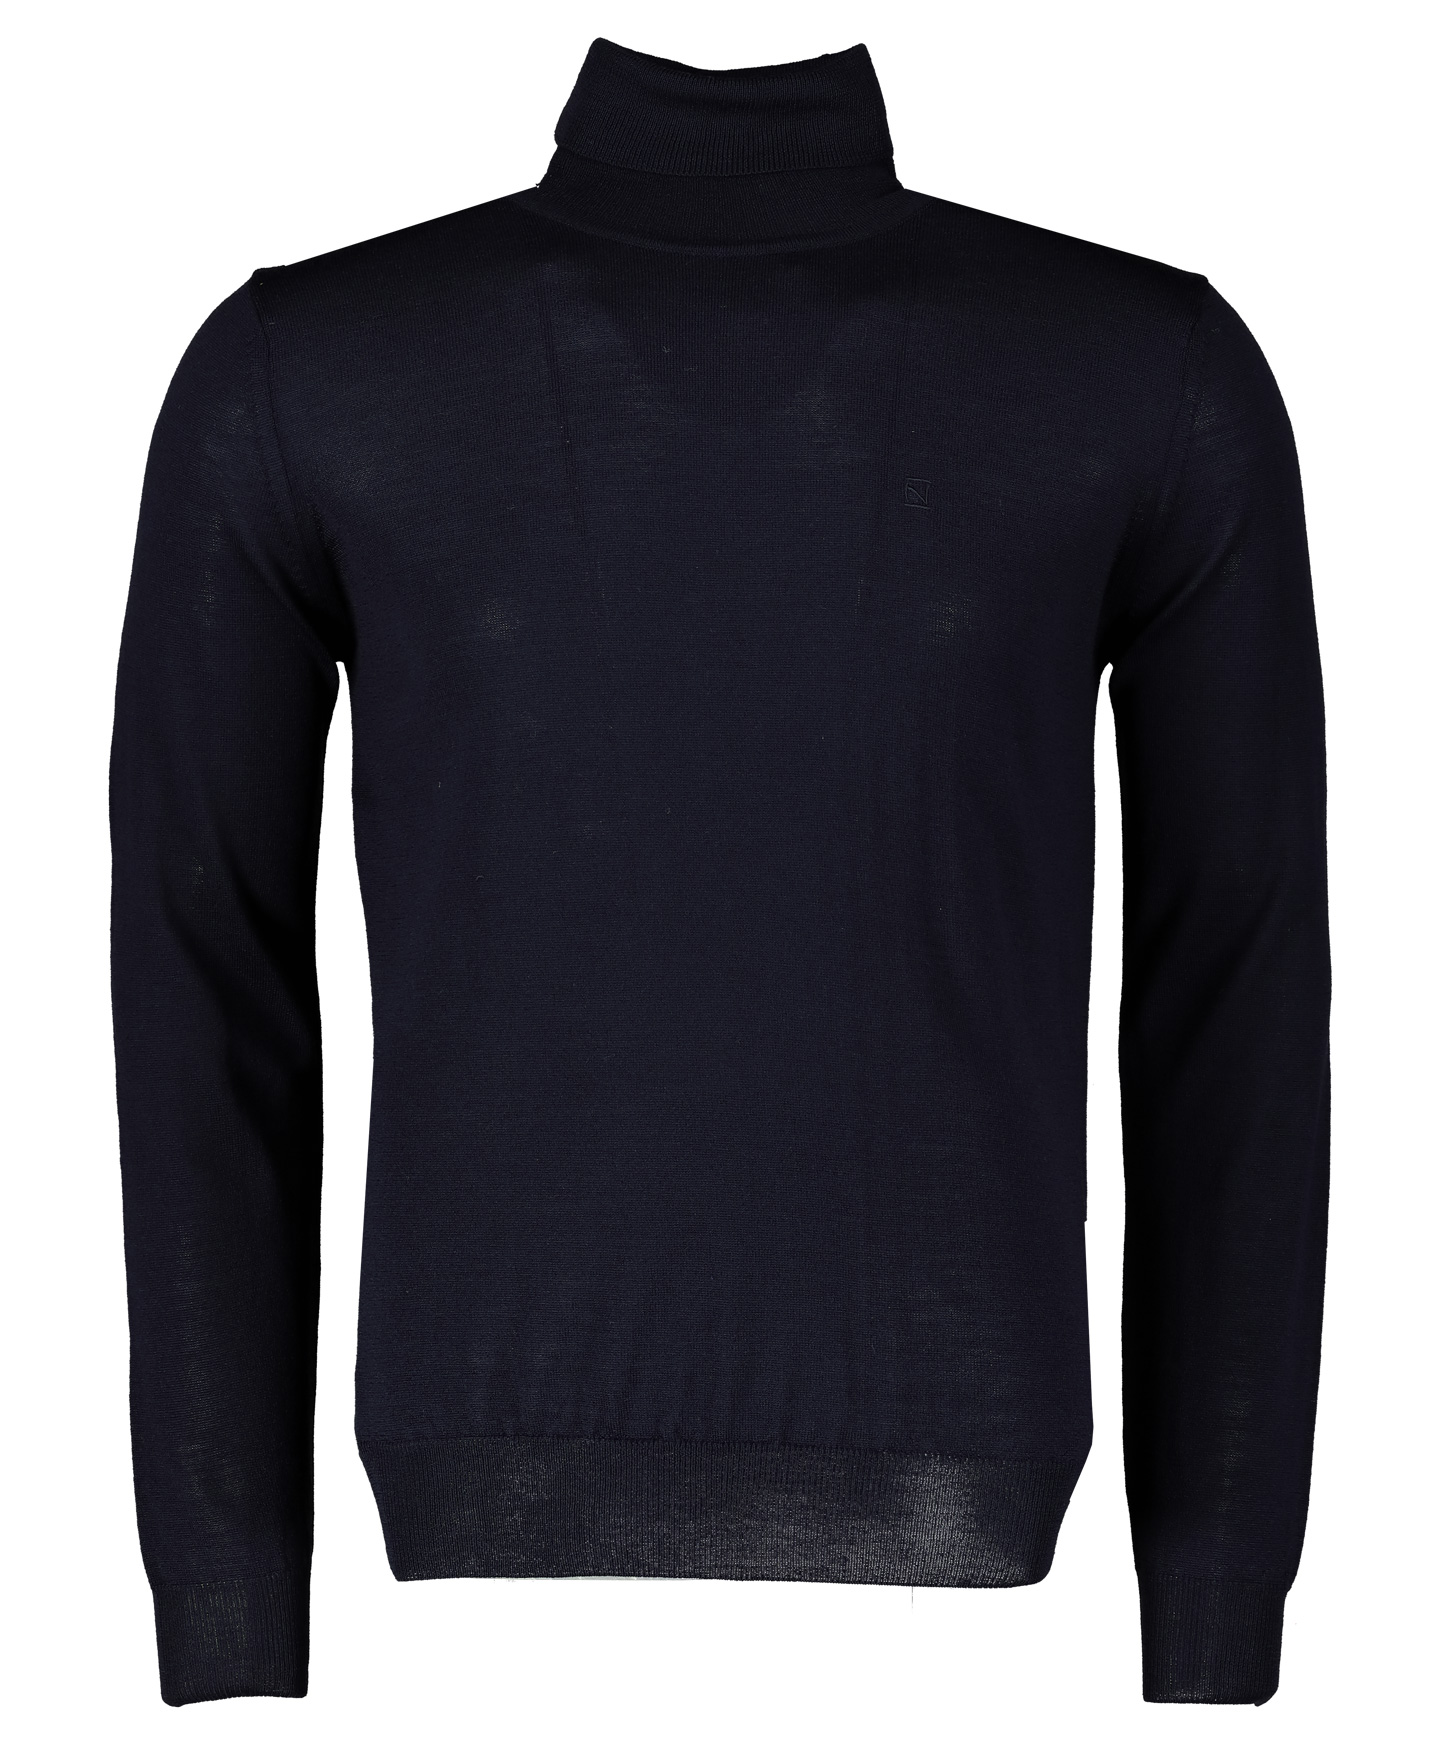 Nils Coltrui - Slim Fit - Blauw